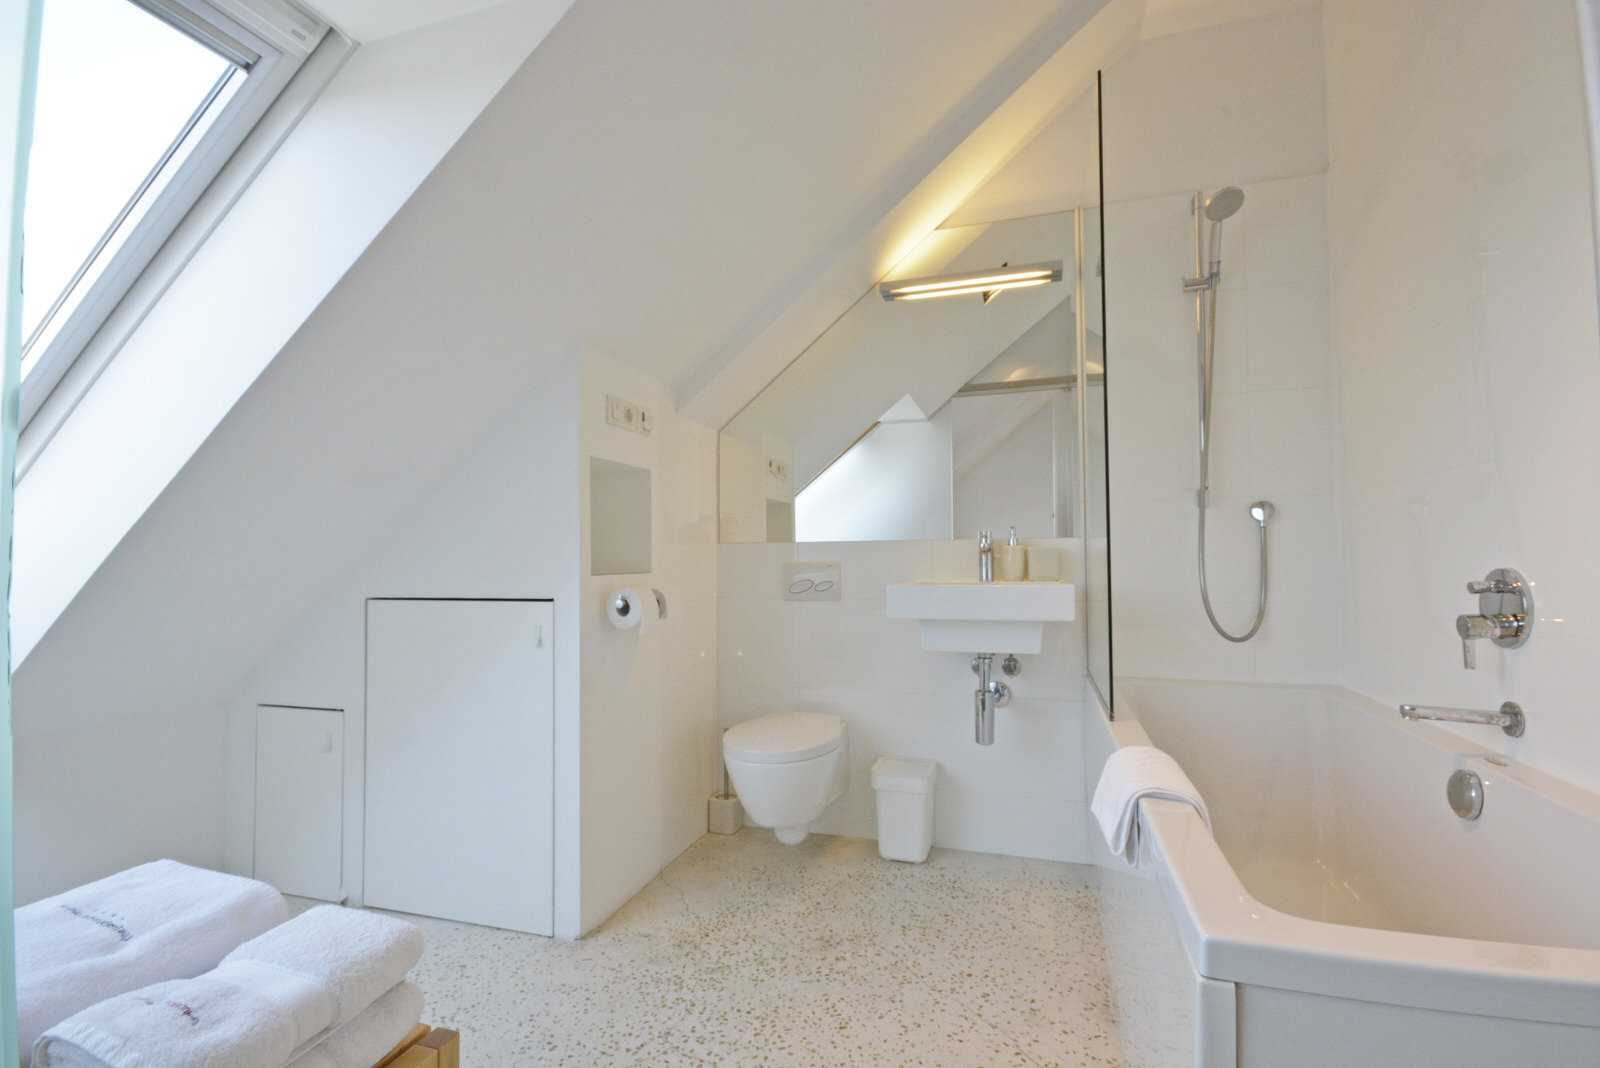 Ljubljana Mini Duplex's rental apartment bathroom with a bathtub and floor heating.